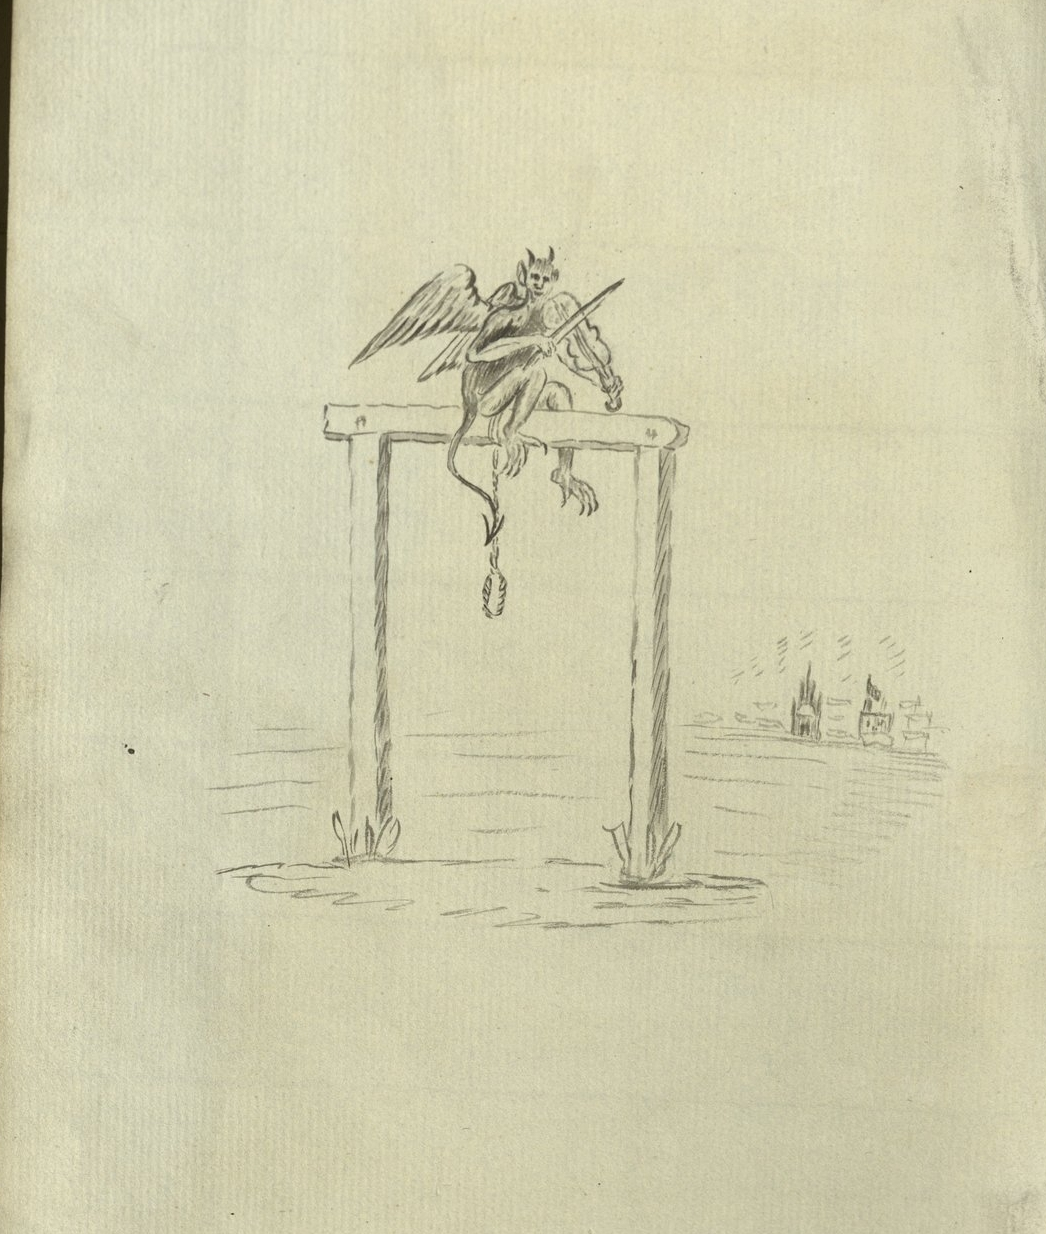 An untitled and undated sketch of the devil sitting atop a gallows. The illustration appears in the pages of the Charles Smith Skin Book at Newcastle Library.